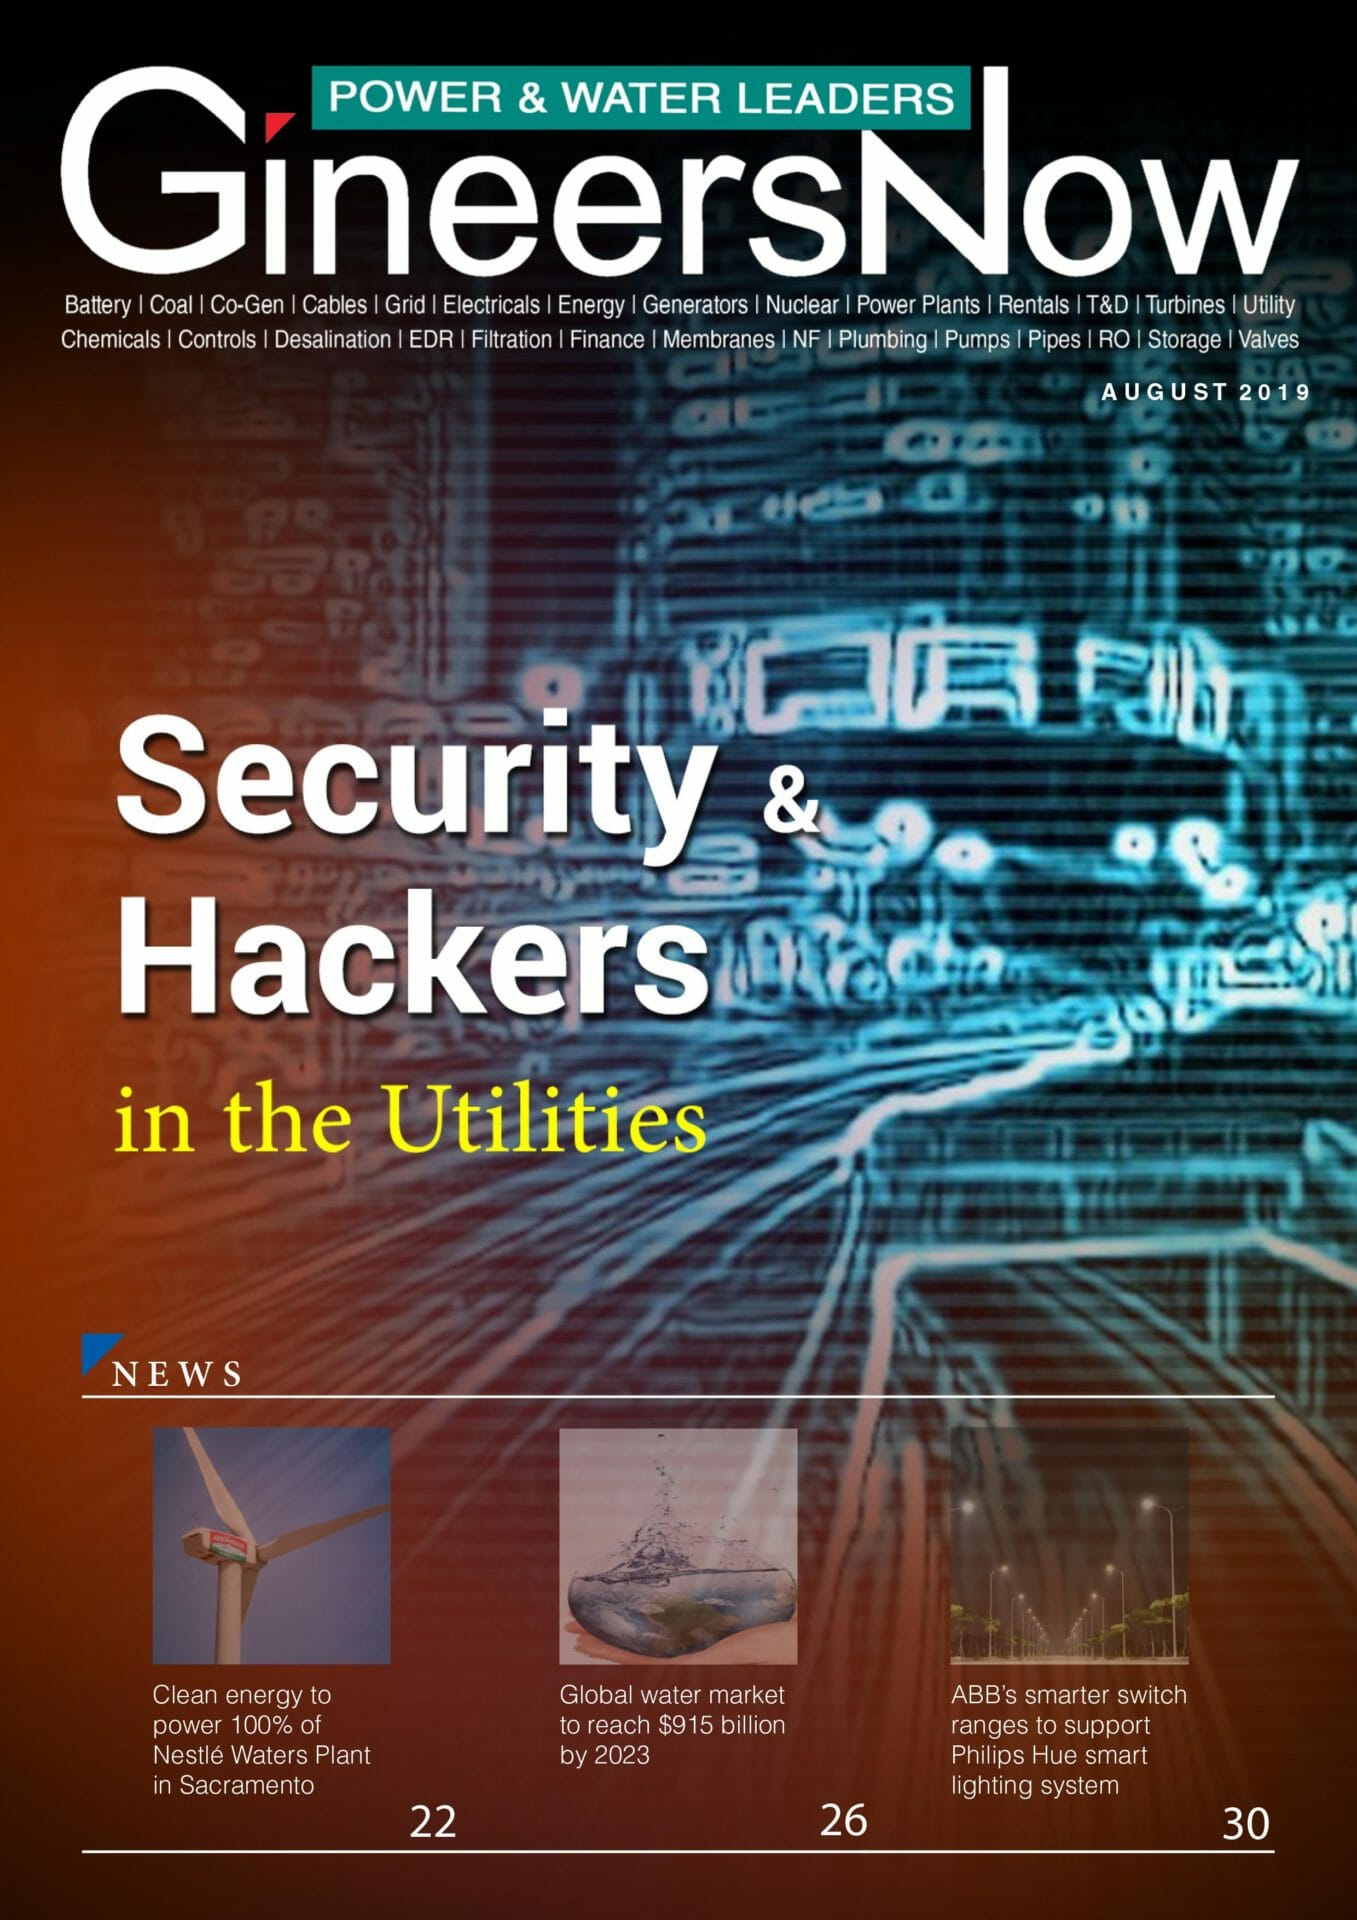 Online Security Threats in Power, Water and Utilities - GineersNow